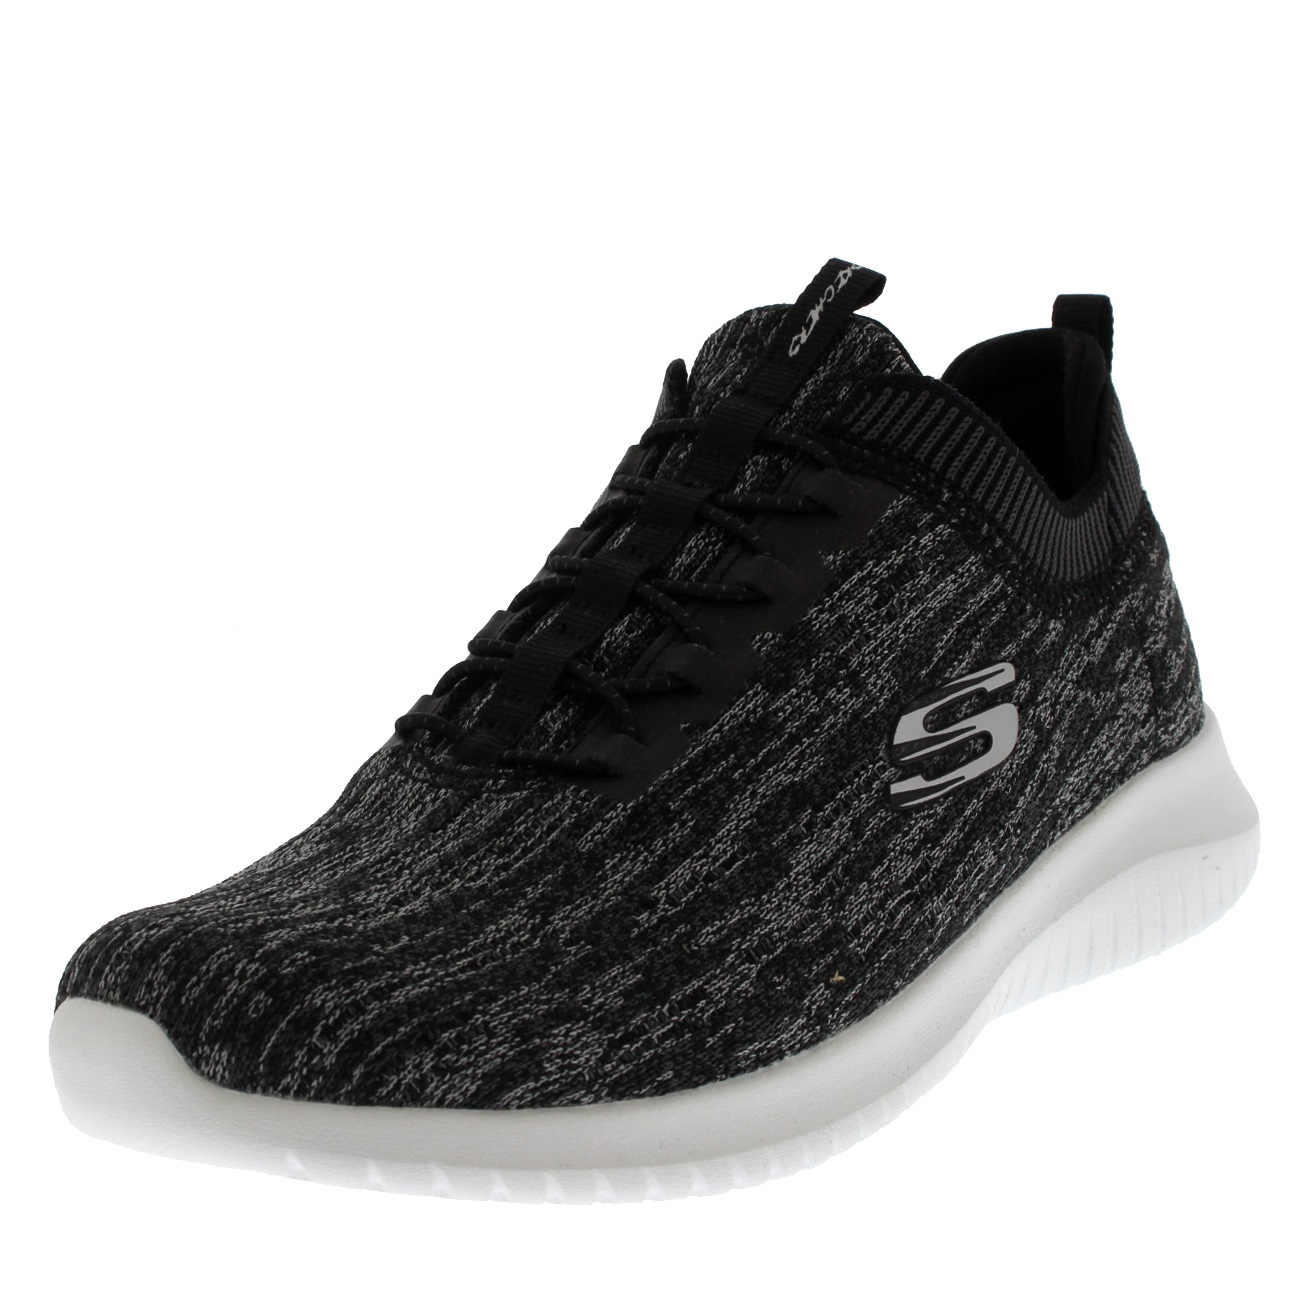 Skechers Ultra Flex Bright Horizon